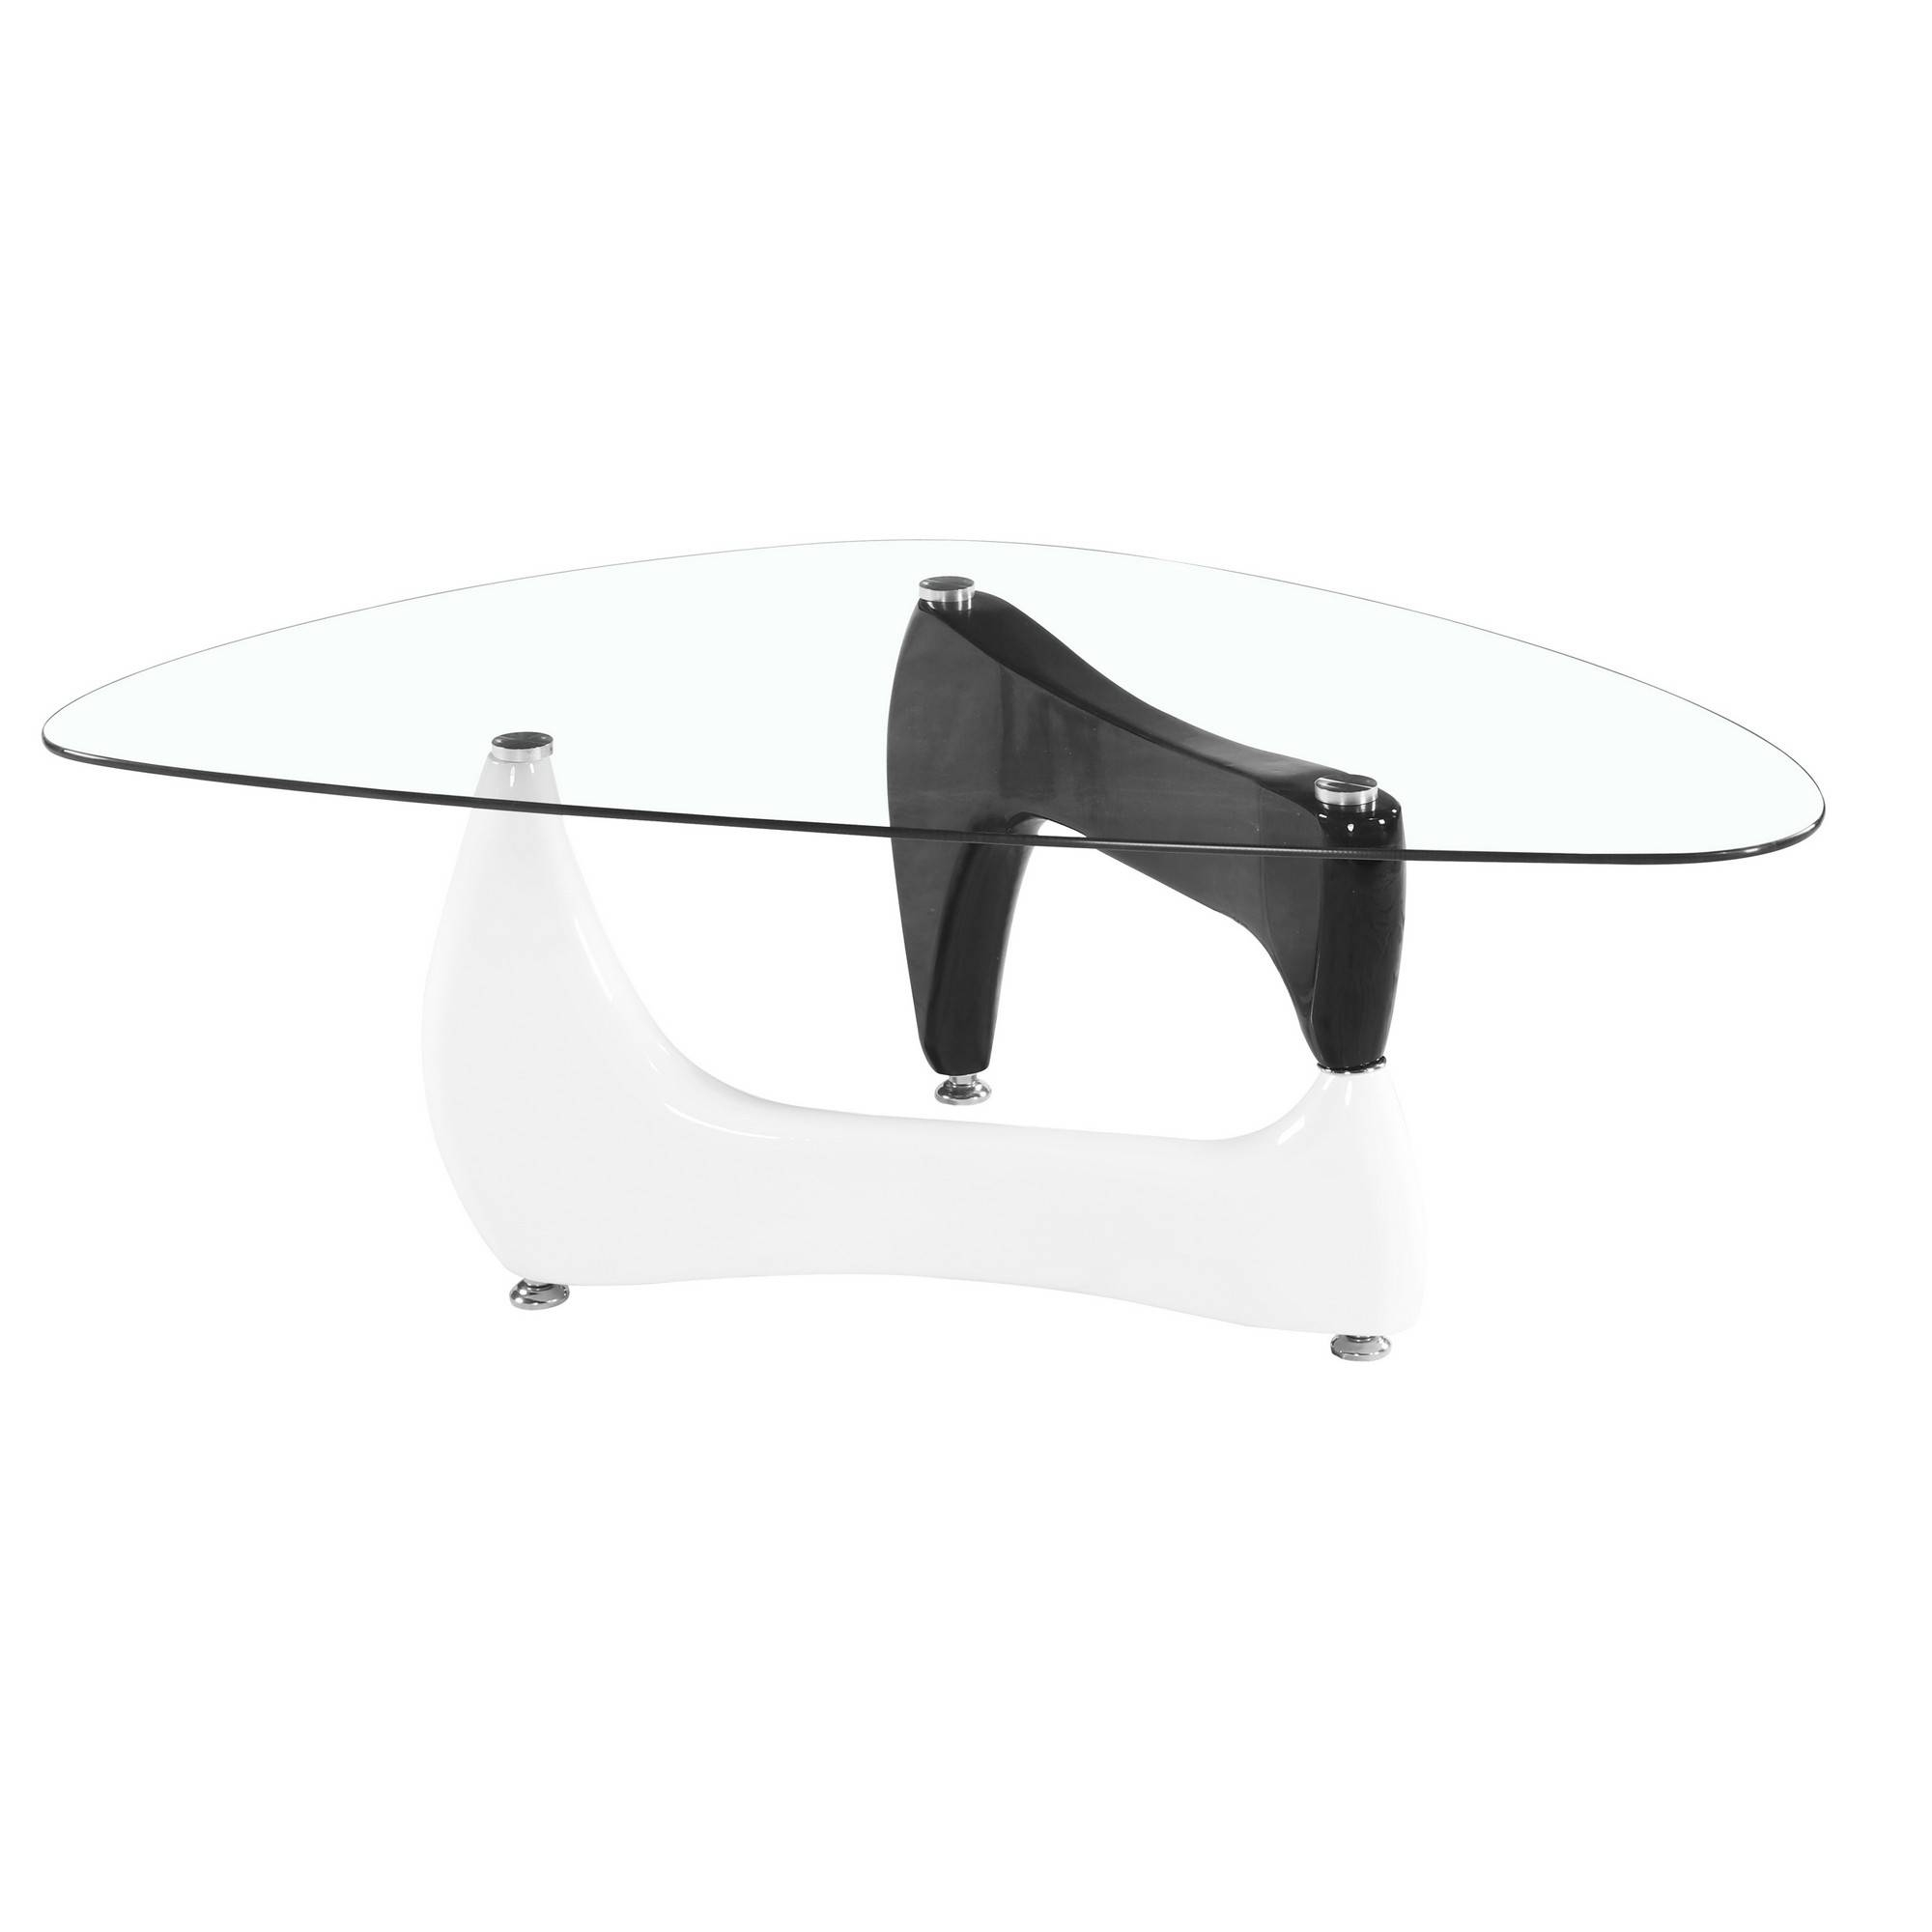 Glass Coffee Tables - Tempered Glass Coffee Table - Small Oval intended for White And Glass Coffee Tables (Image 14 of 30)